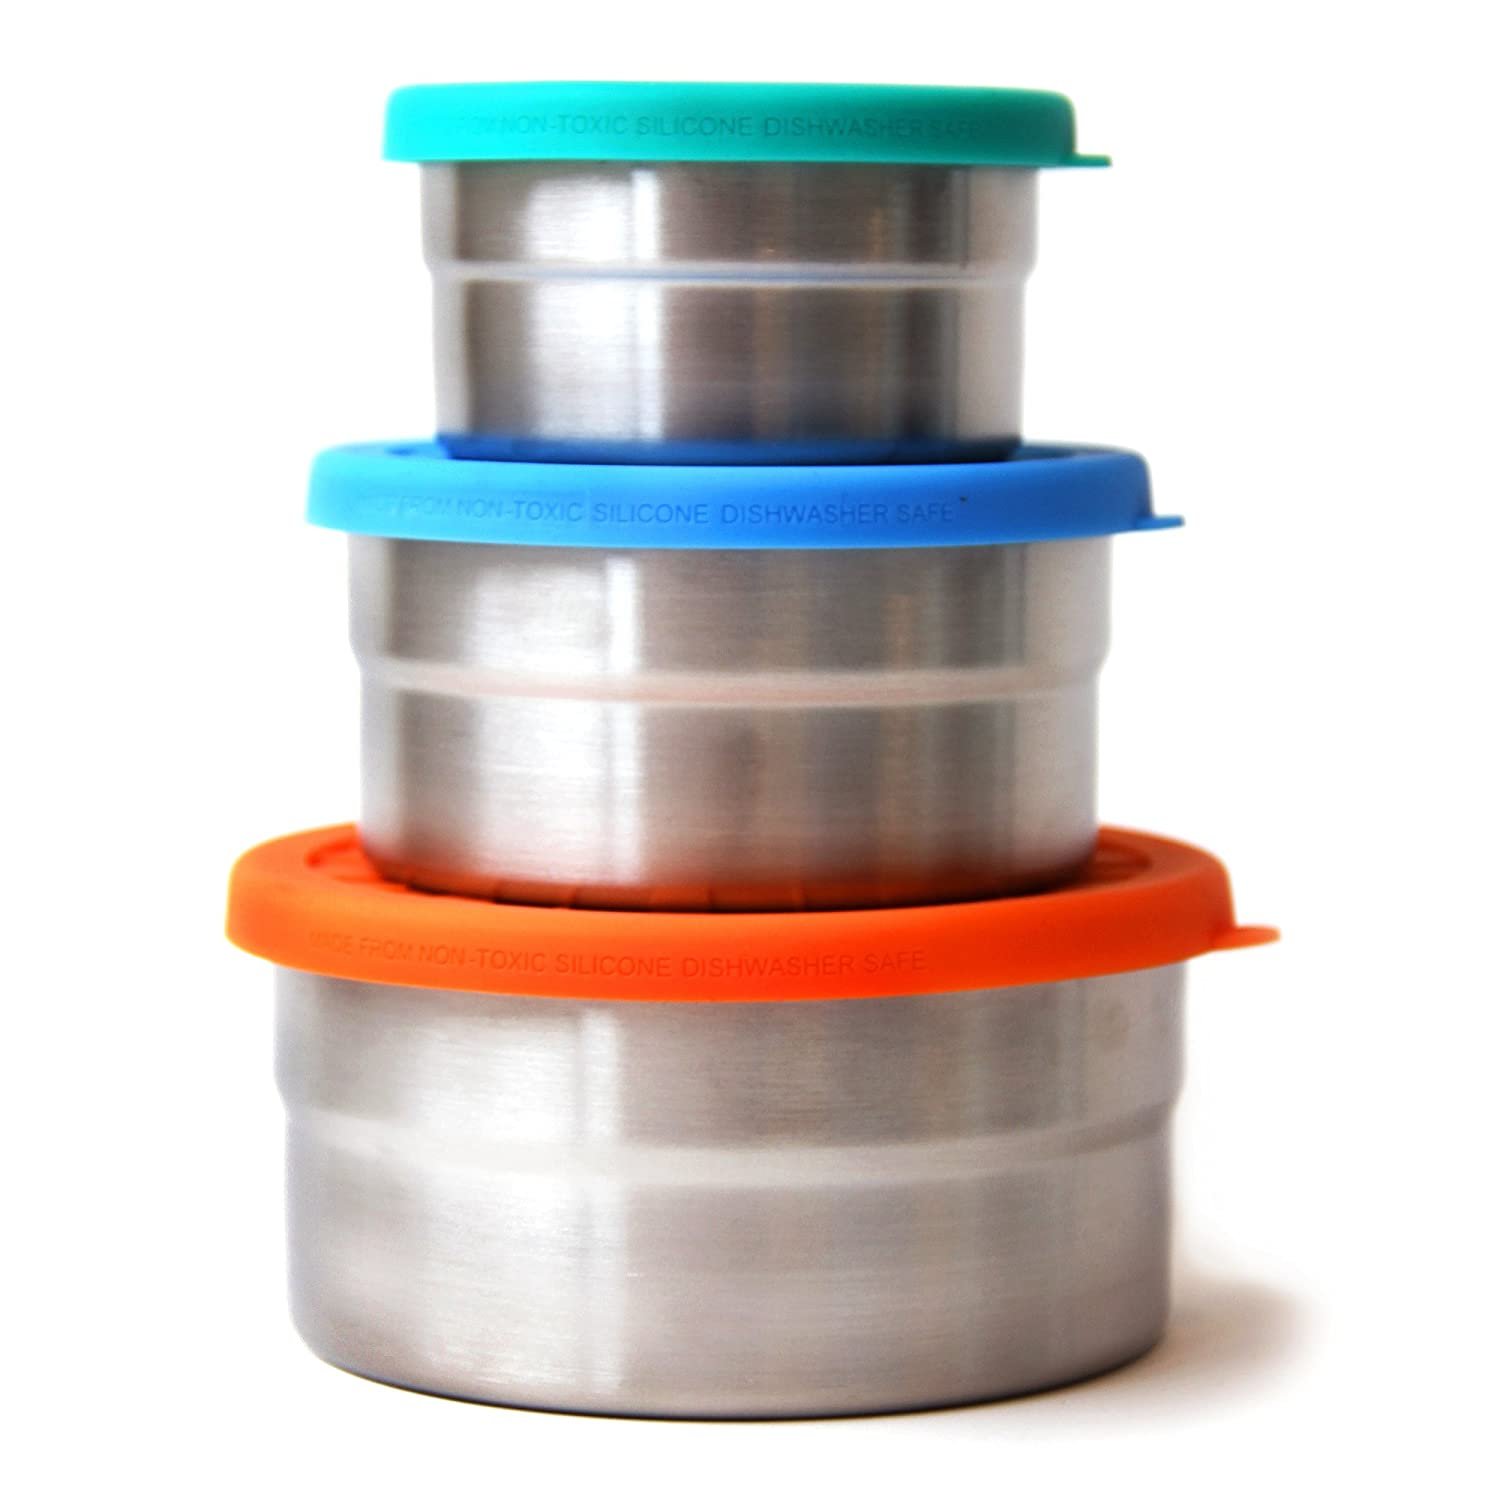 ECOlunchbox Blue Water Bento Seal Cup Trio - Set of 3 Nesting Stainless Steel Food Storage Containers BWB-CT-36